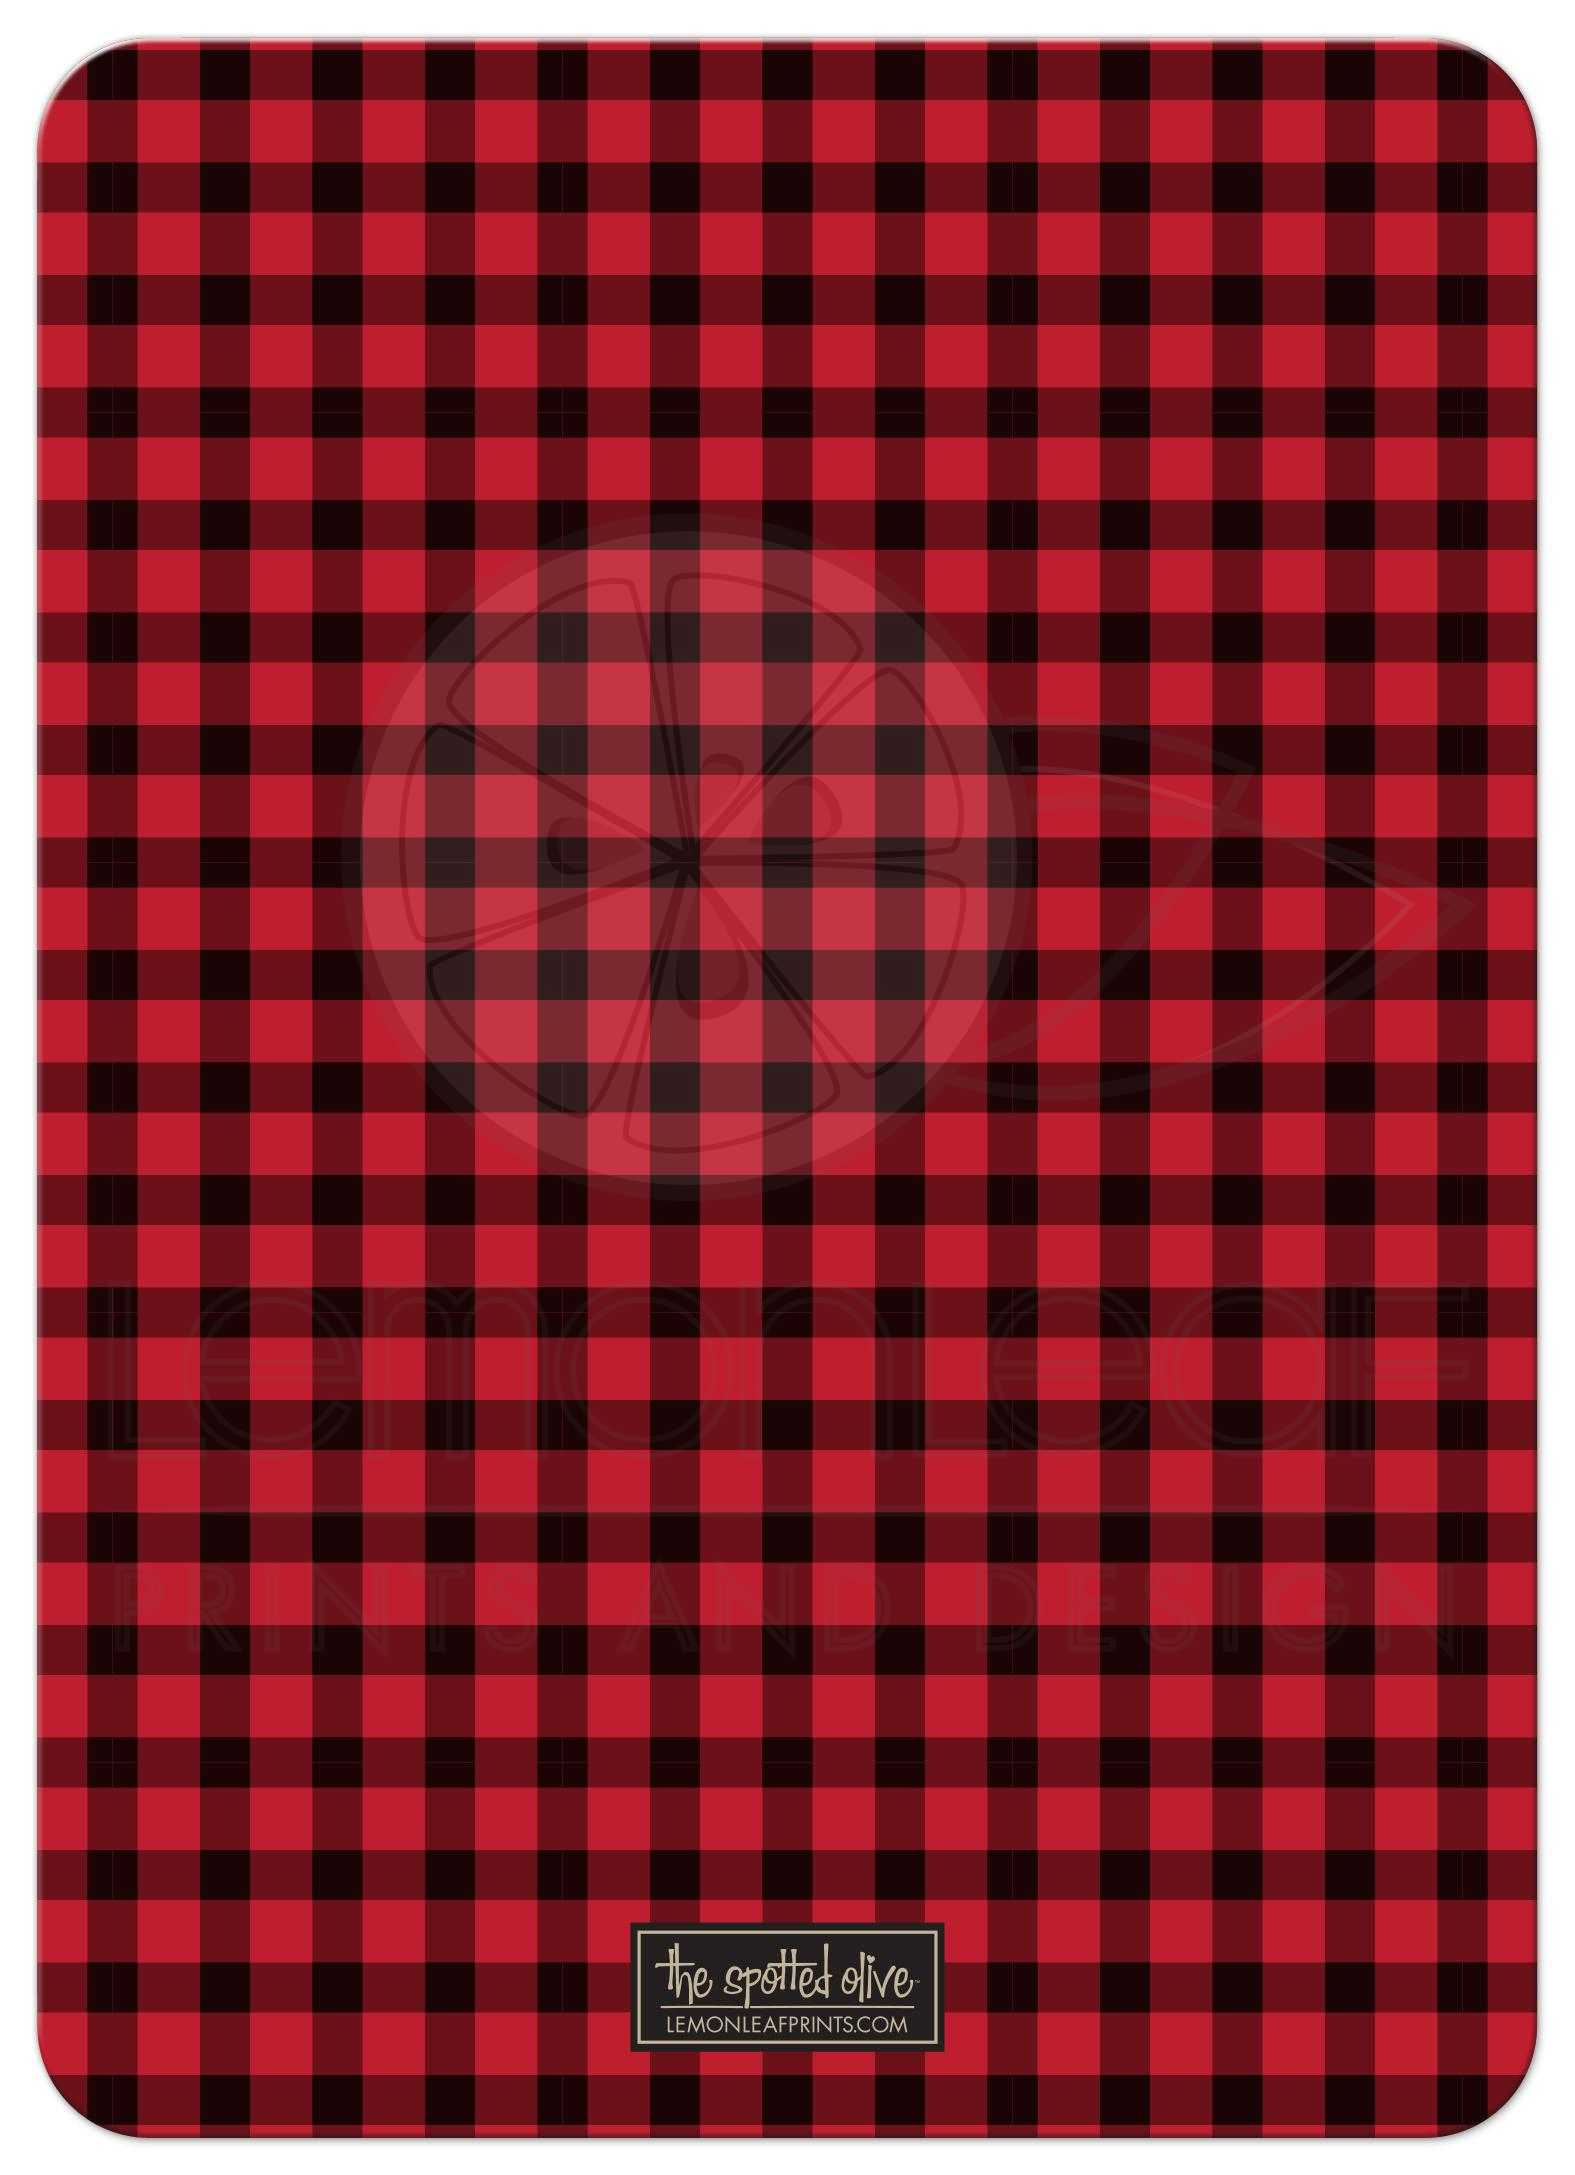 Bachelor Party Invitations Rustic Red Black Plaid Stag Party – Stag Party Invites